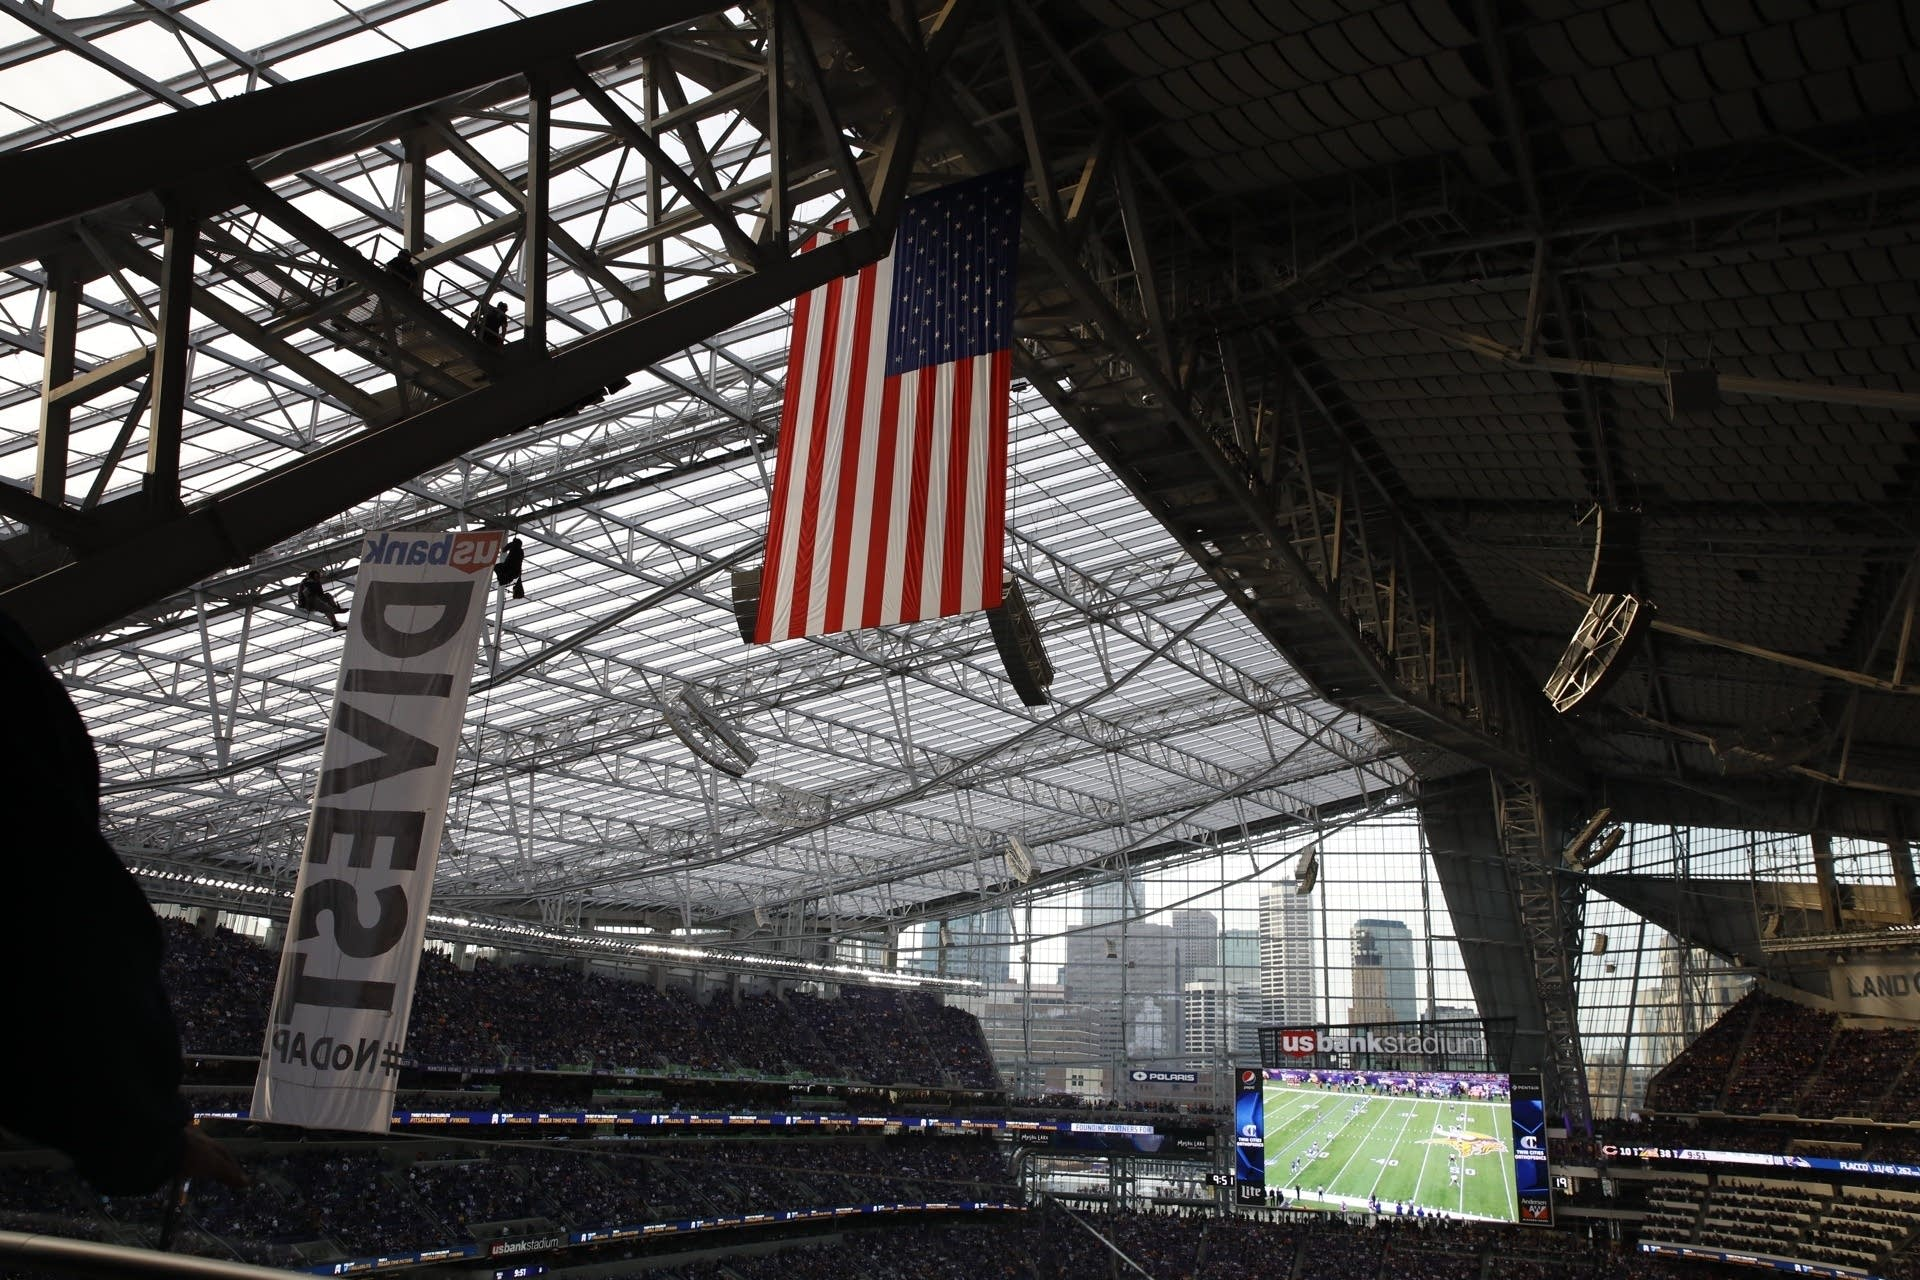 Banner lowered during the Vikings game.